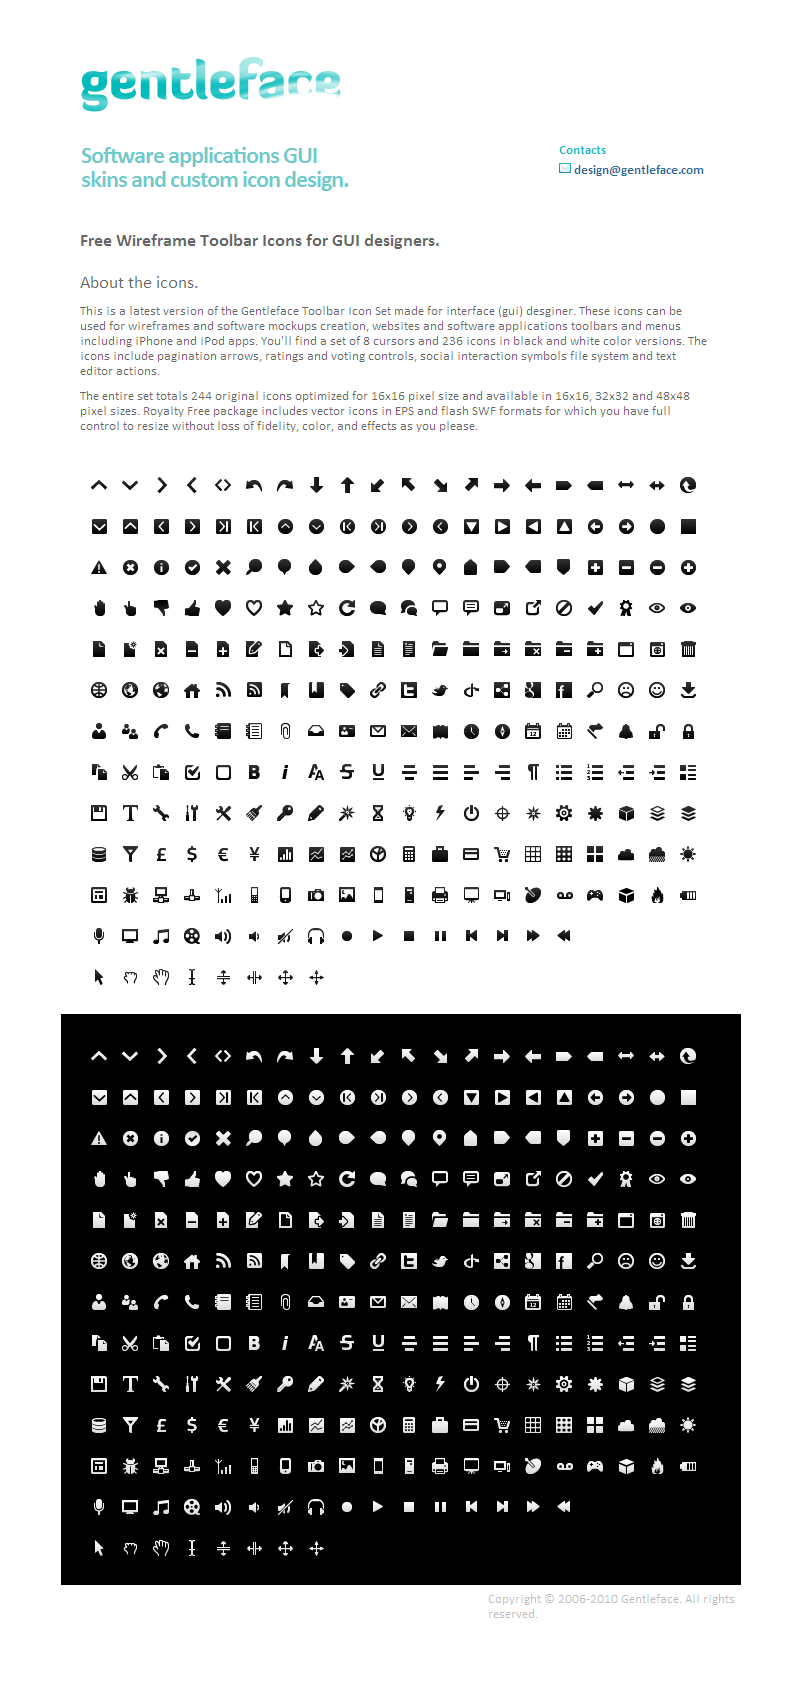 Wireframe mono black and white sets minimalist style icon, a total of 244